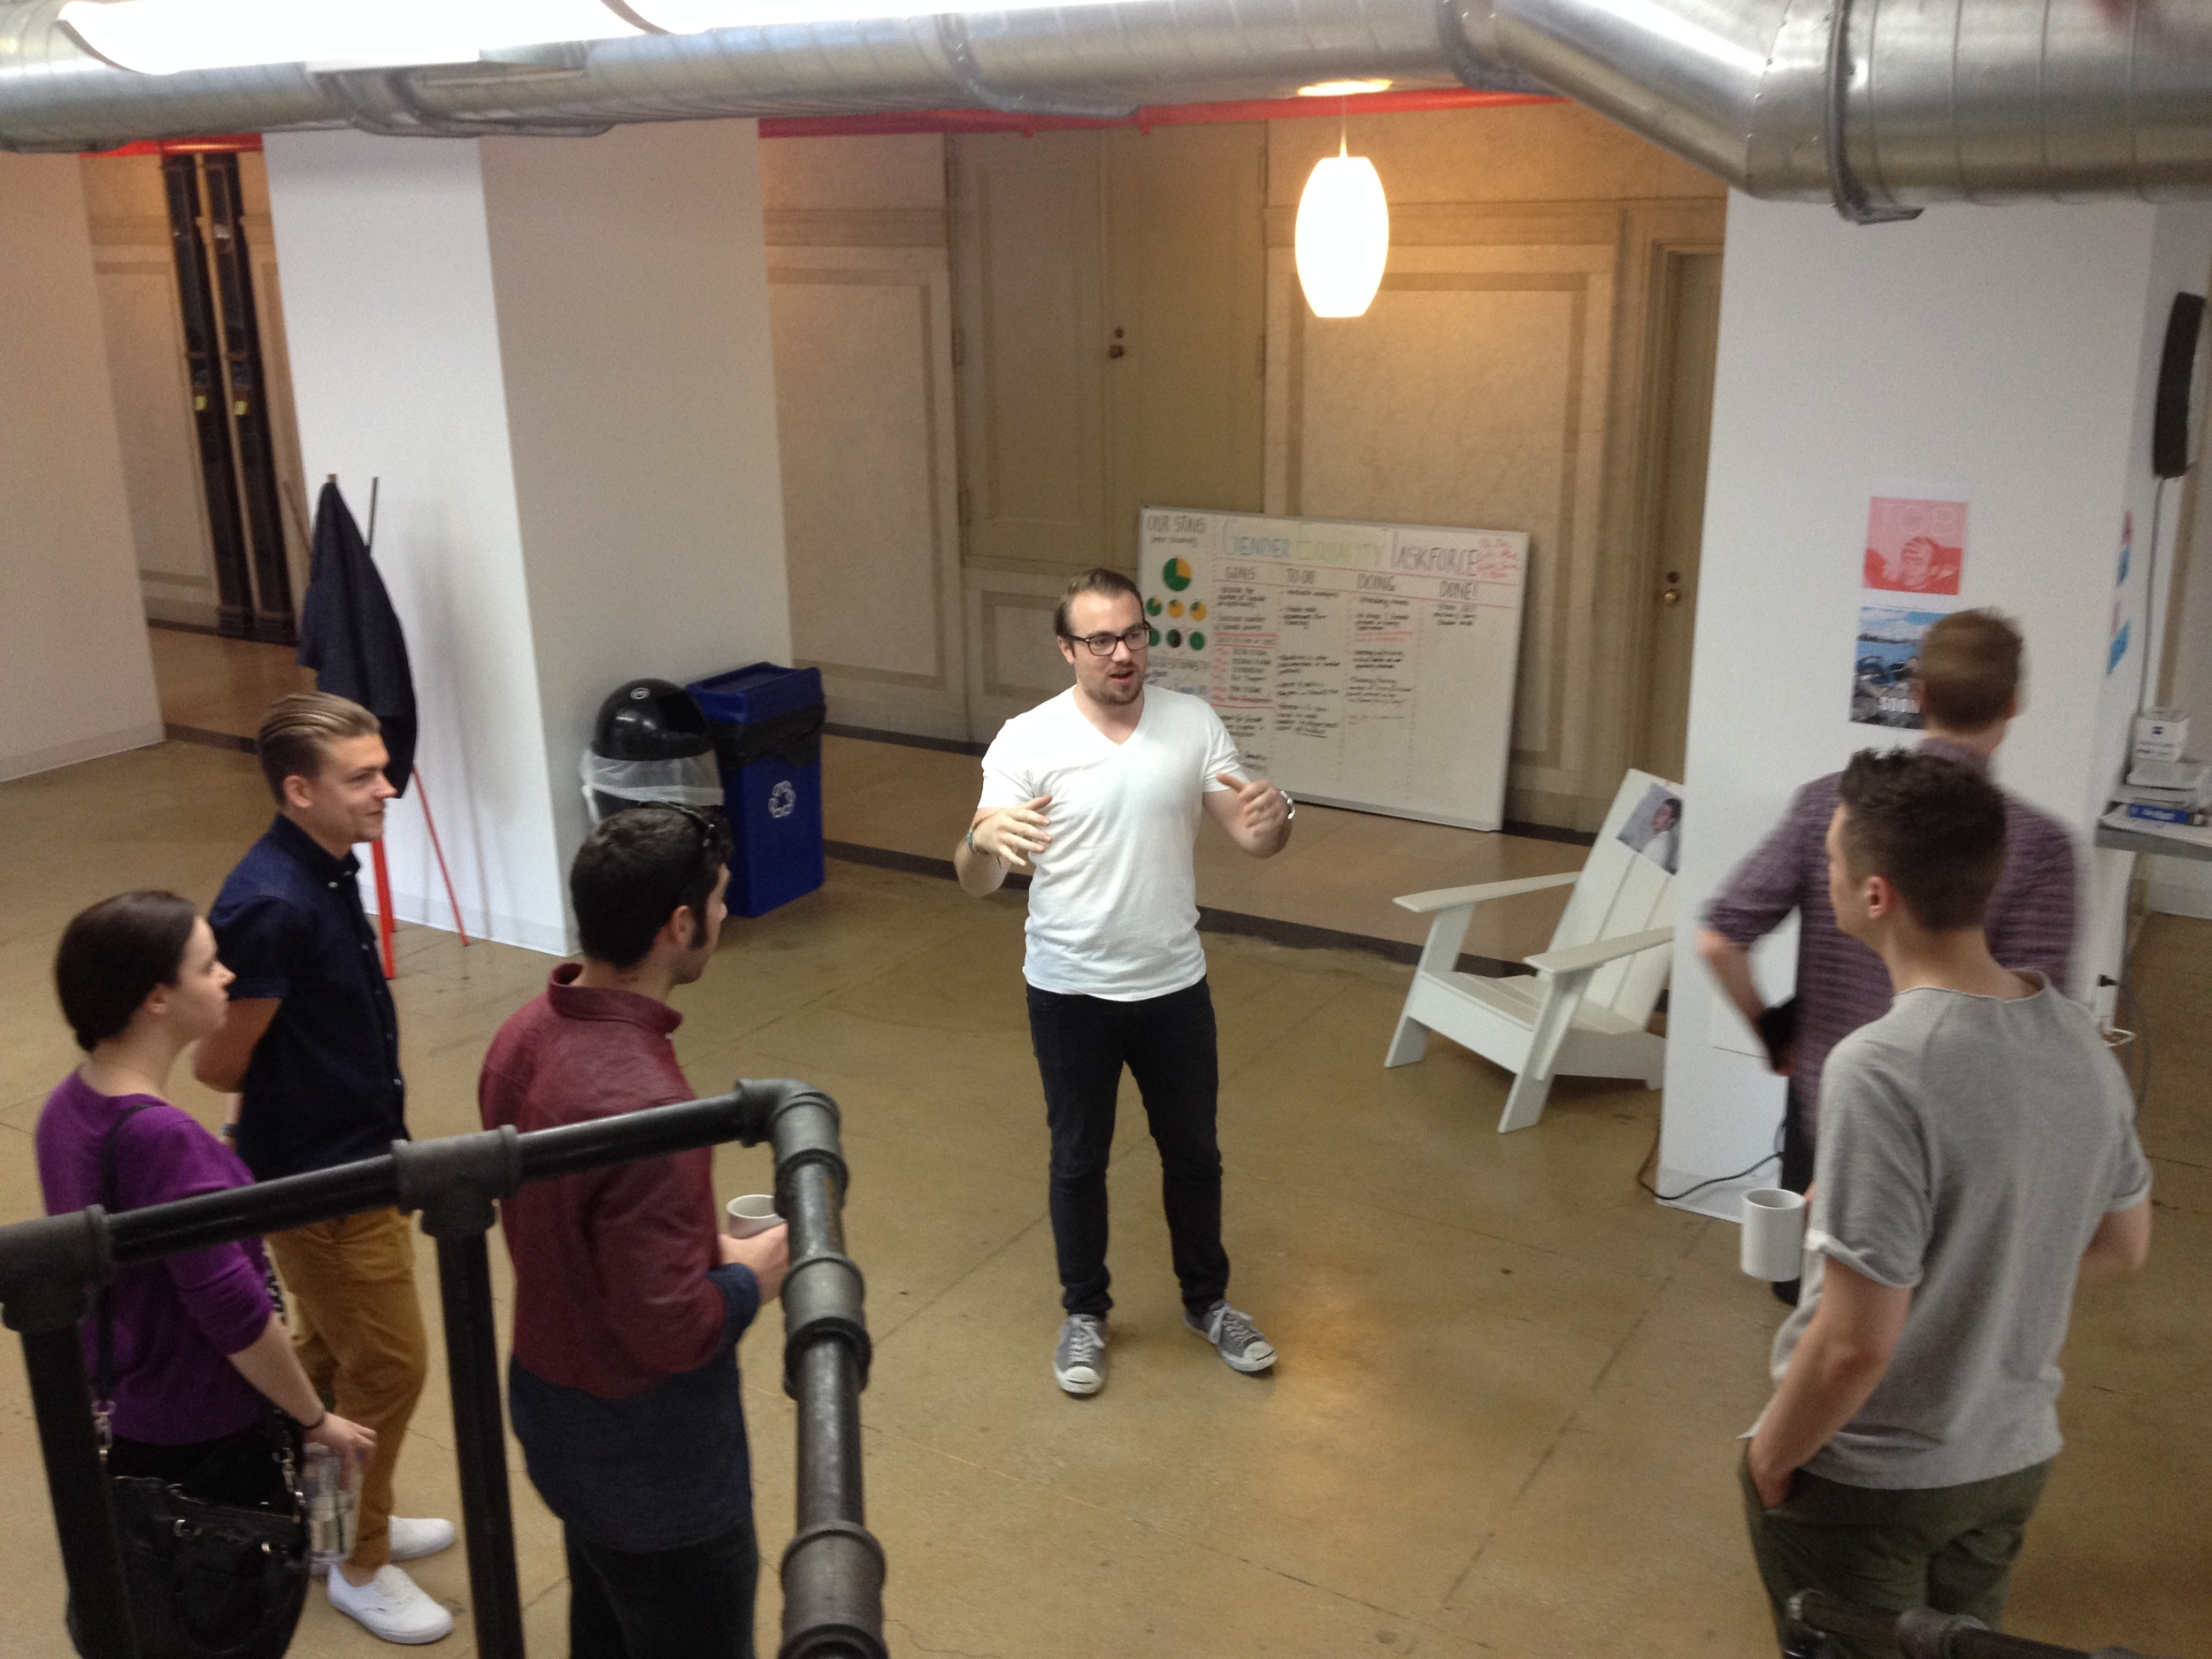 Carl, an ustwo strategist, giving the studio tour.